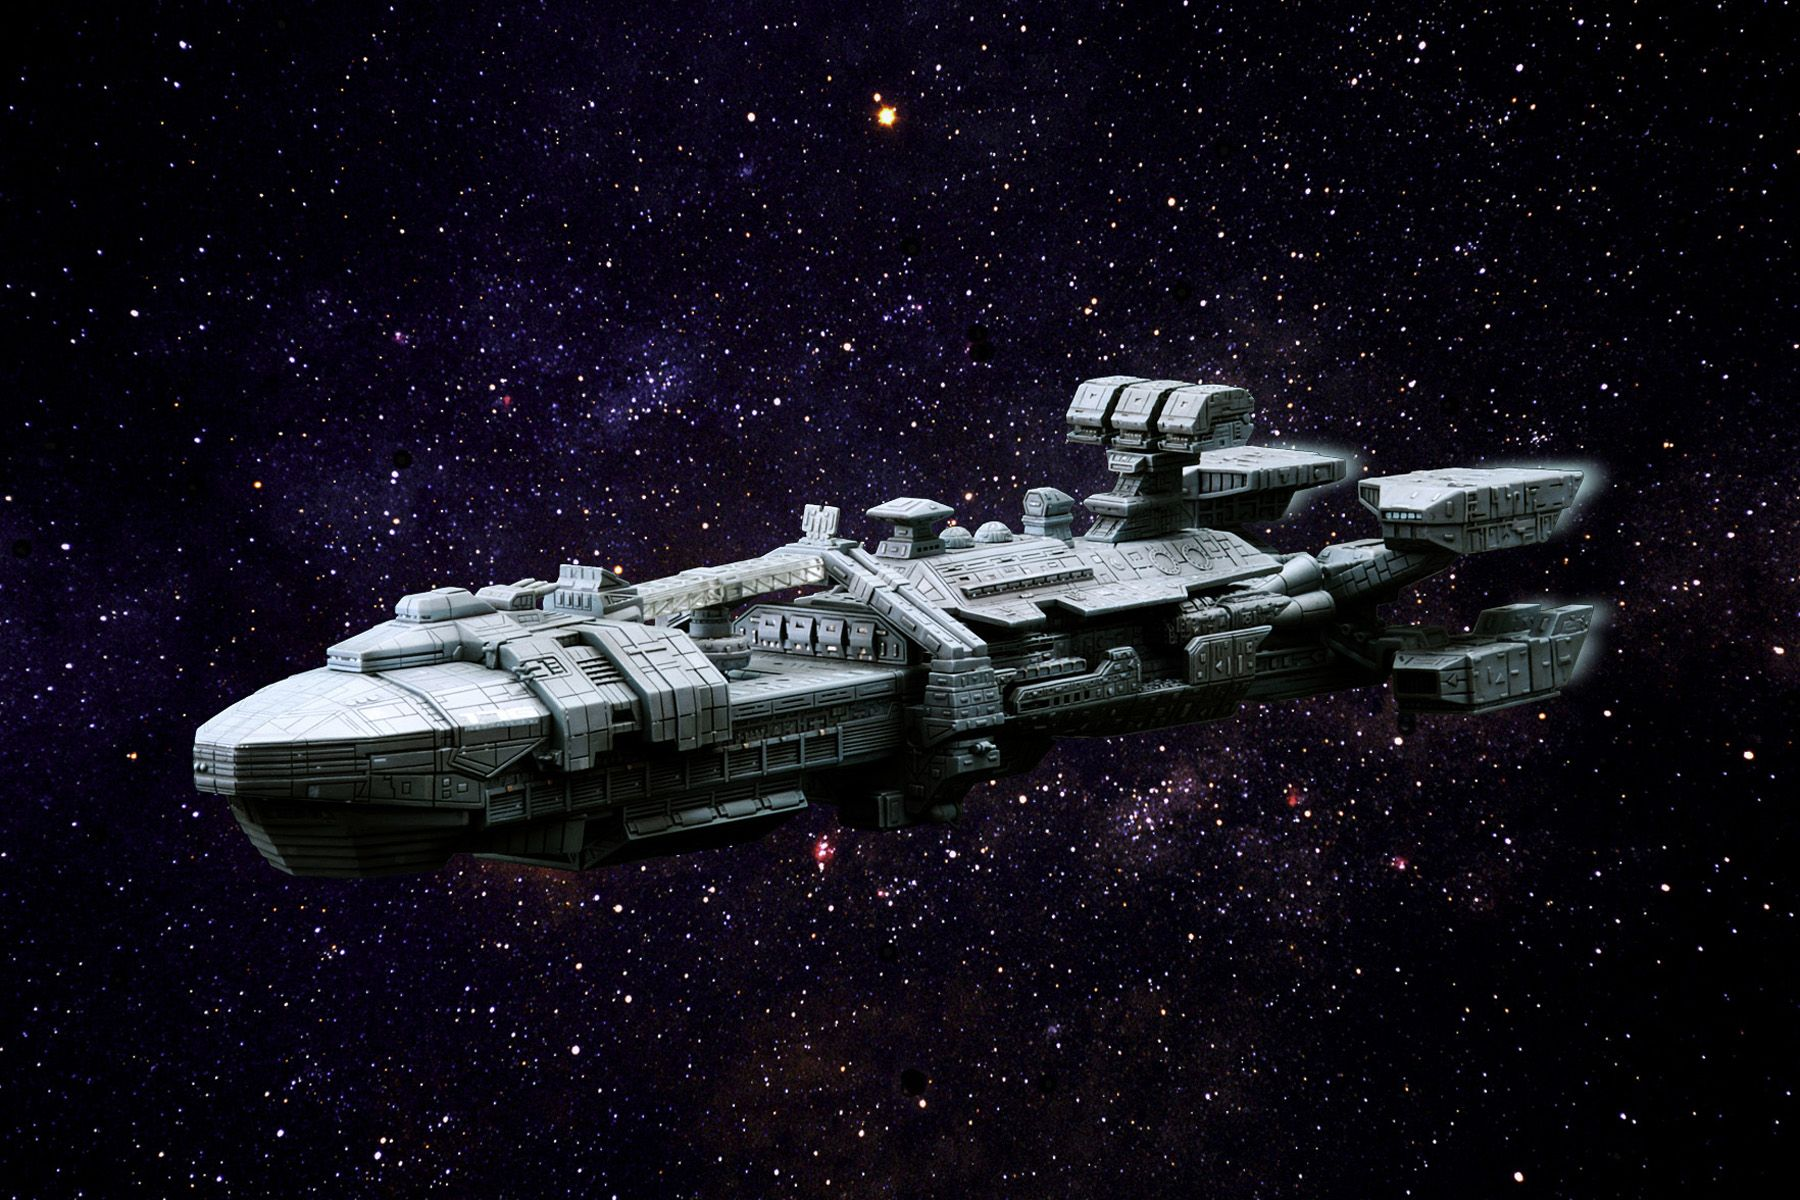 wallpaper starships from tv | starship troopers ships | cool stuff